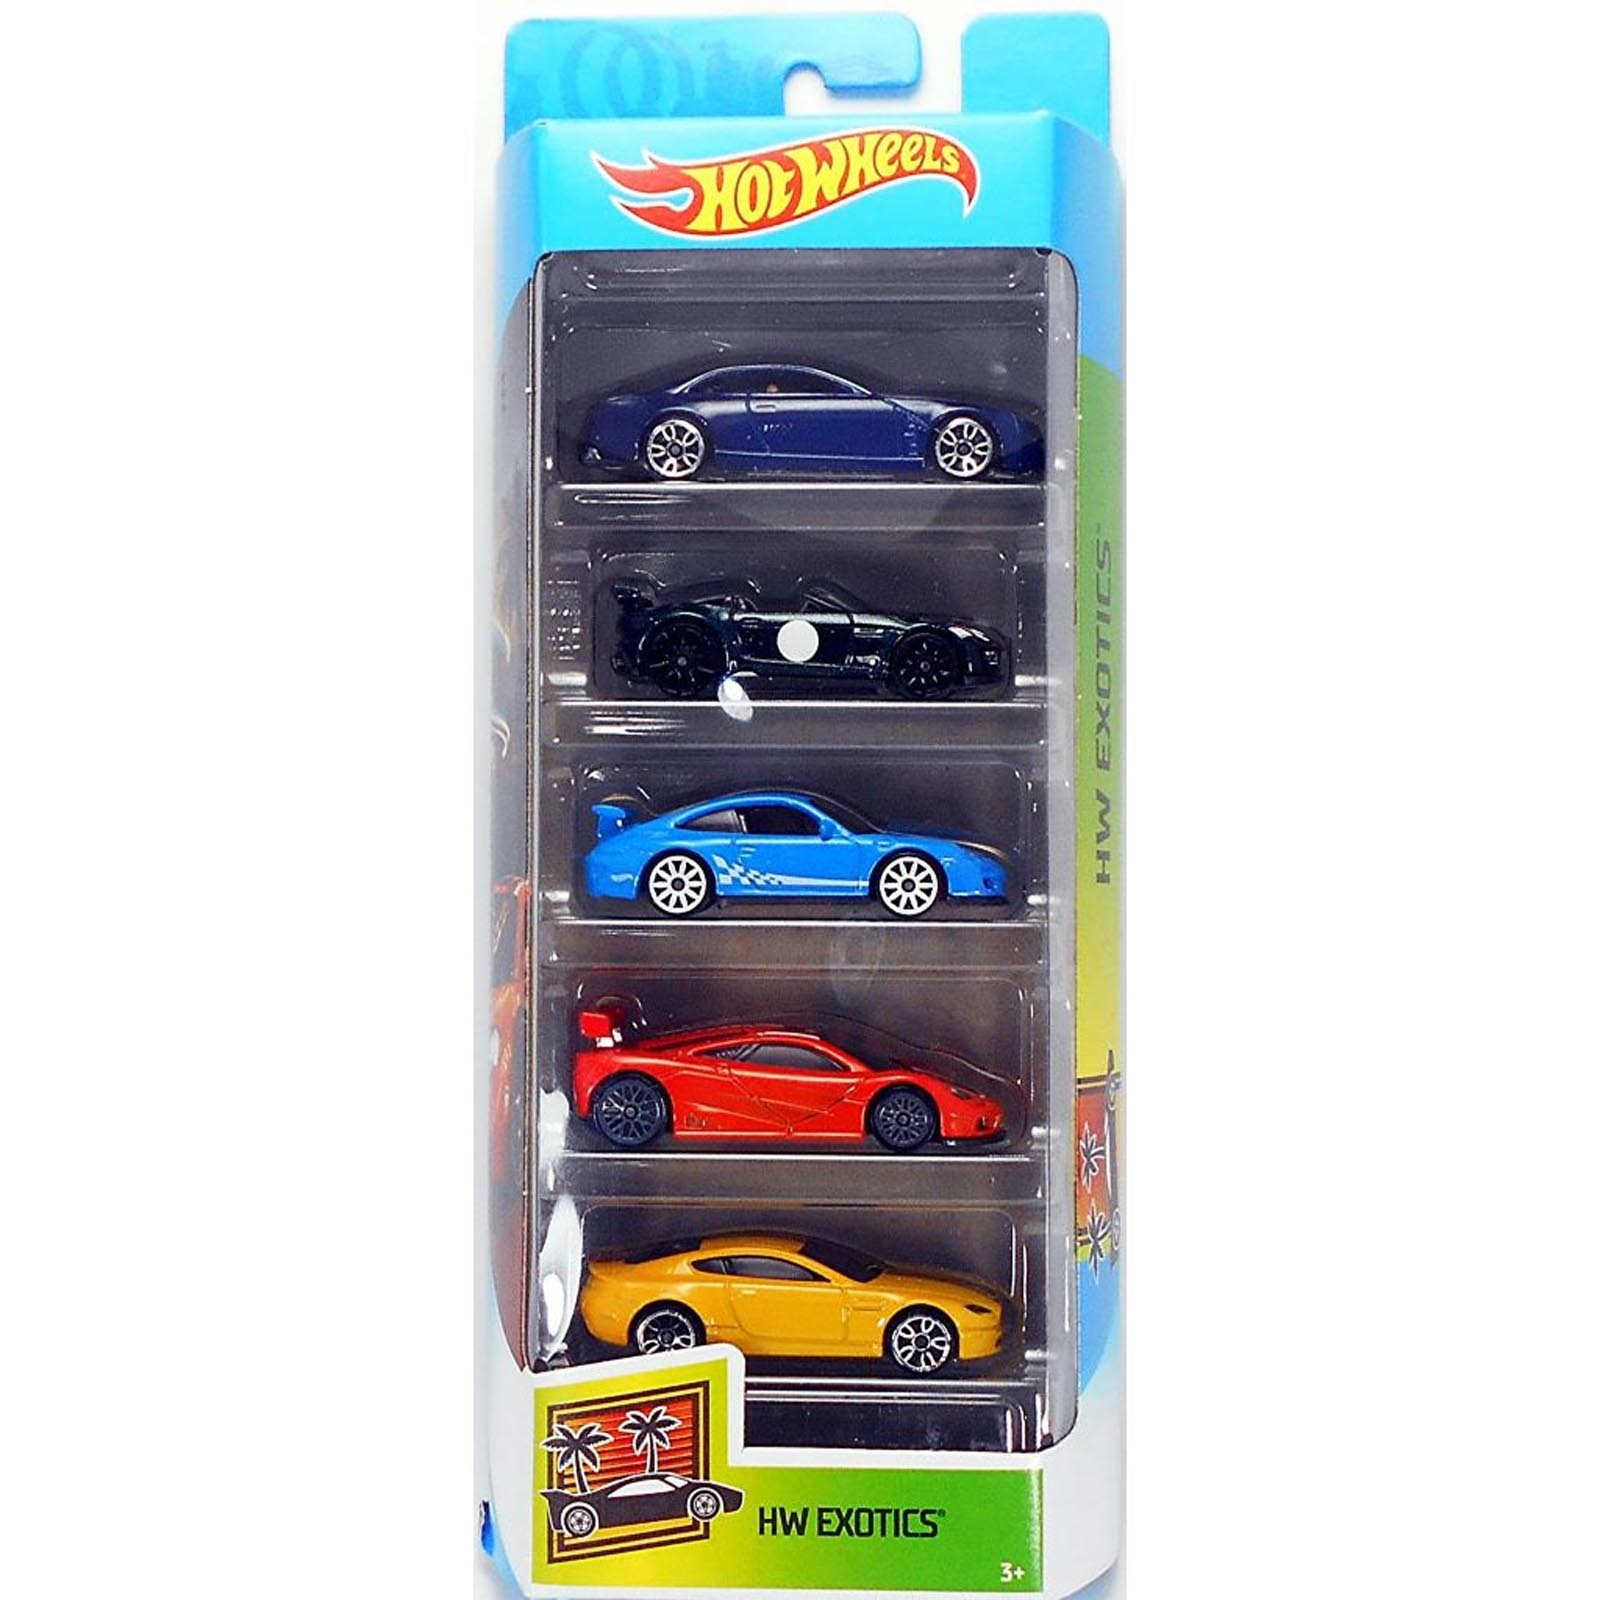 Pack de 5 Hot Wheels - Exotics 2020 - GHP50